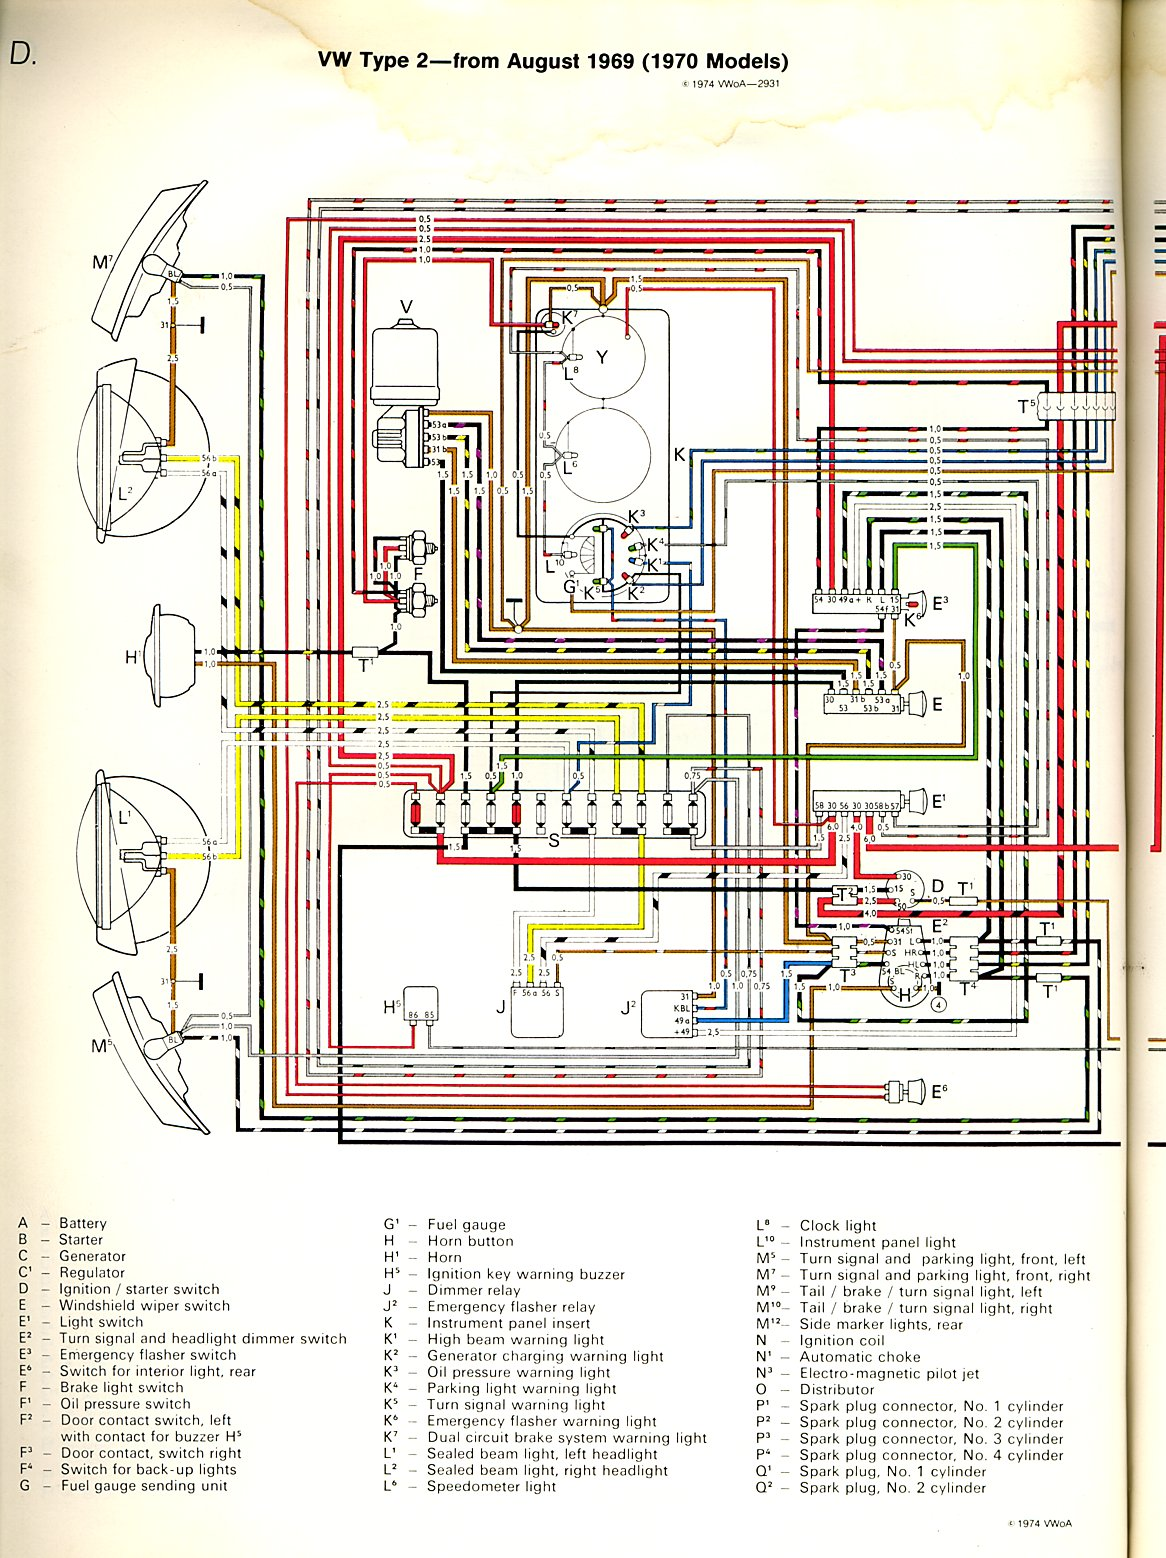 vw bus wiring diagram for points thesamba.com :: type 2 wiring diagrams #5